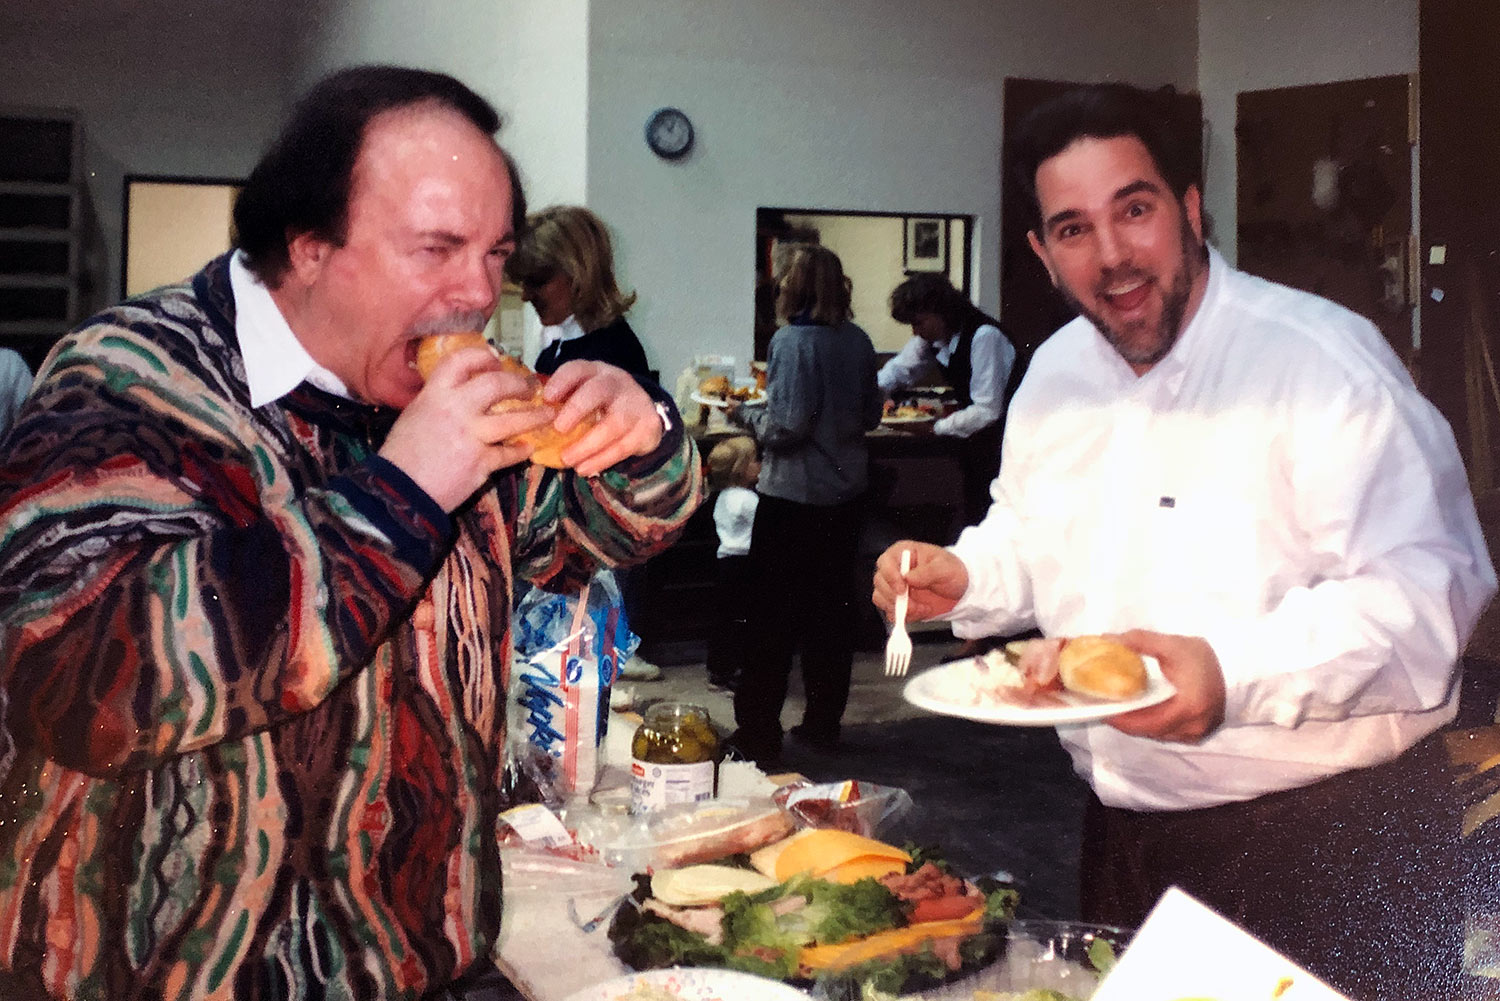 Arnie Nudell and Mark Schifter at a Genesis company lunch